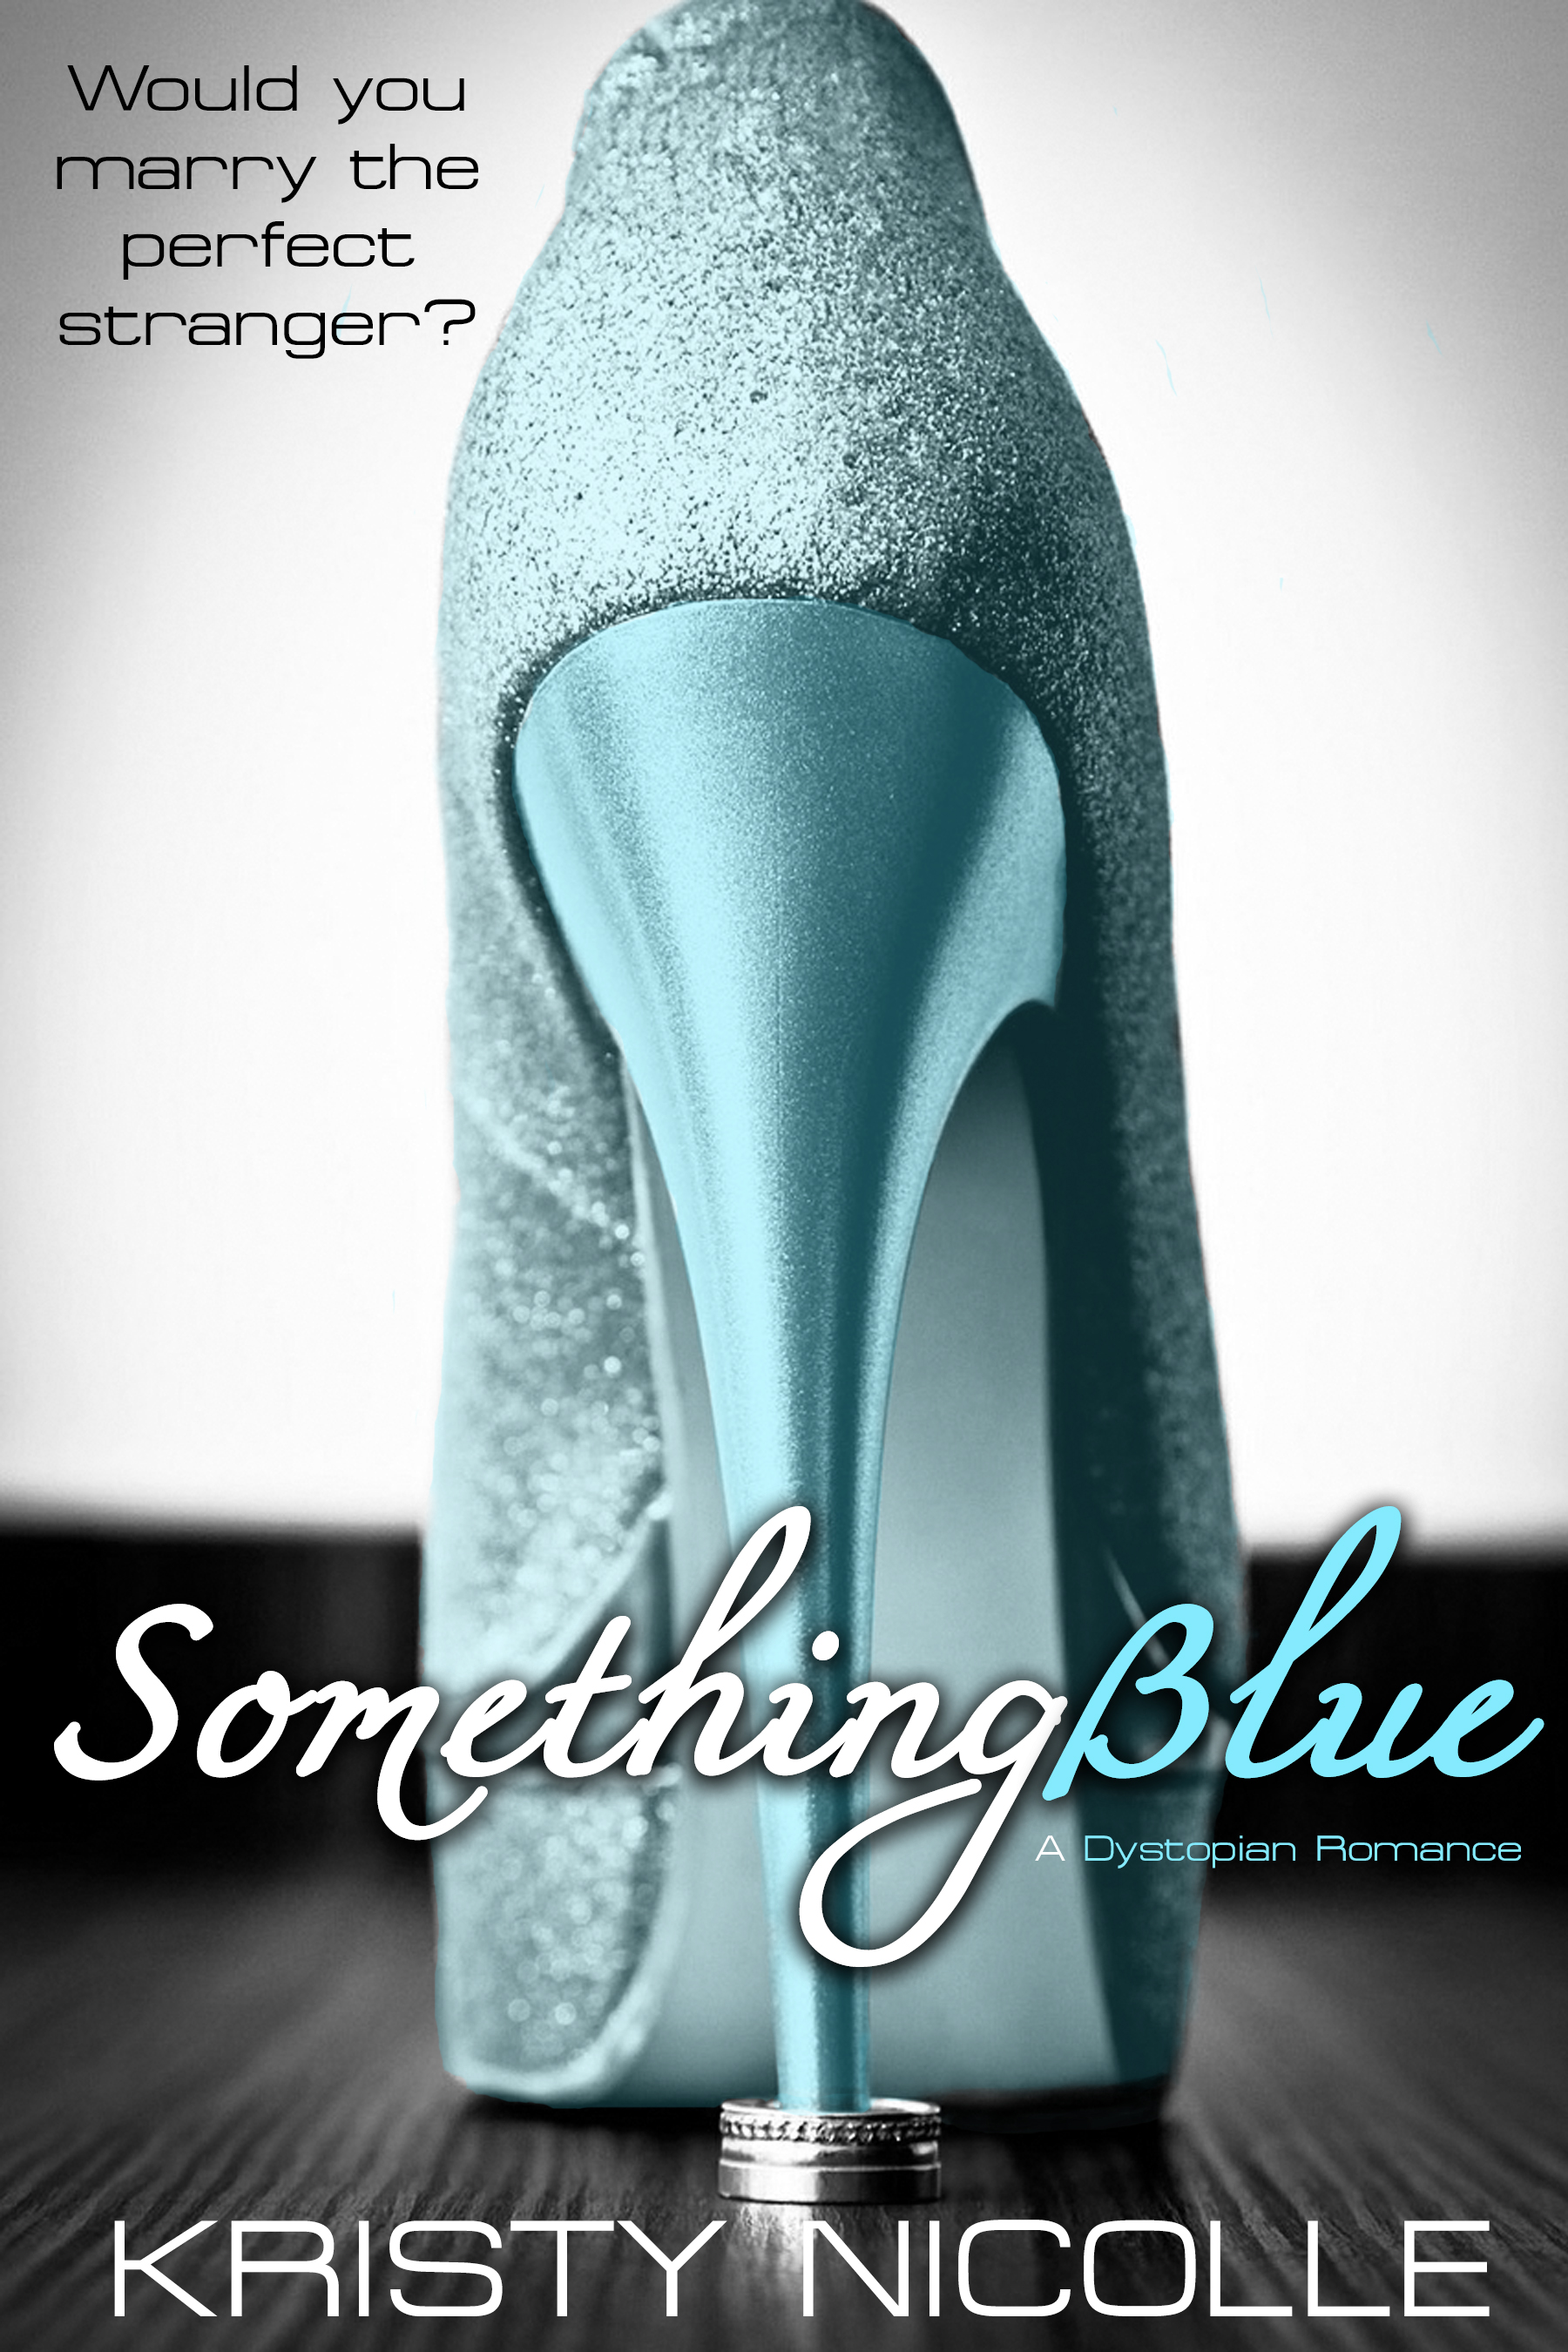 Something Blue- A Dystopian Romance - Available FREE with Kindle UnlimitedSYNOPSISIn the city of Monopolis where happily ever after is just a scientific formula away, Valentine Morland has been waiting nine years for her day to come. Now it's here, and she will marry the man of her dreams, a stranger to her, before being swept off to life of carefree luxury and bliss, courtesy of the Jigsaw Project. However, all is not as Valentine imagined as her new husband is quickly discovered as not the man of her dreams, but one who claims he isn't capable of love at all. Harbouring an intense paranoia for the system, which upholds the very idealist fantasy that Valentine holds so dear, Clark threatens to throw her into a world, not of bliss, but of scary consequence where her every emotion is under scrutiny. Can it be that the scientific formula with a 99% success rate got it all wrong, or is everything in the world of Bliss Inc. more sinister than it seems?